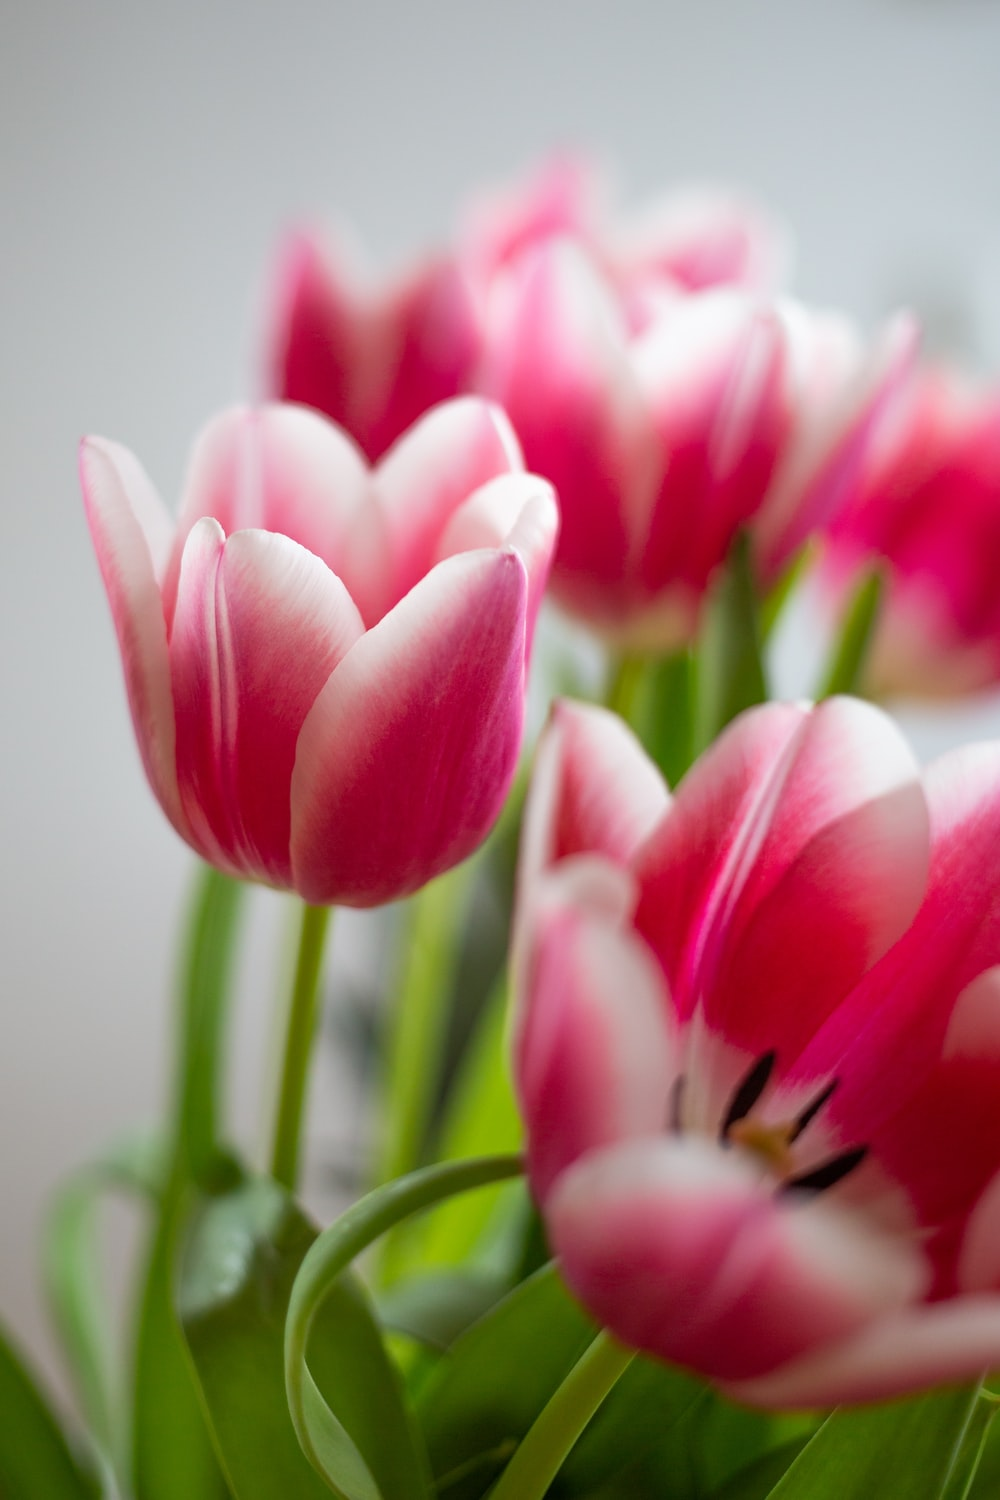 close-up photography of pink flowrs